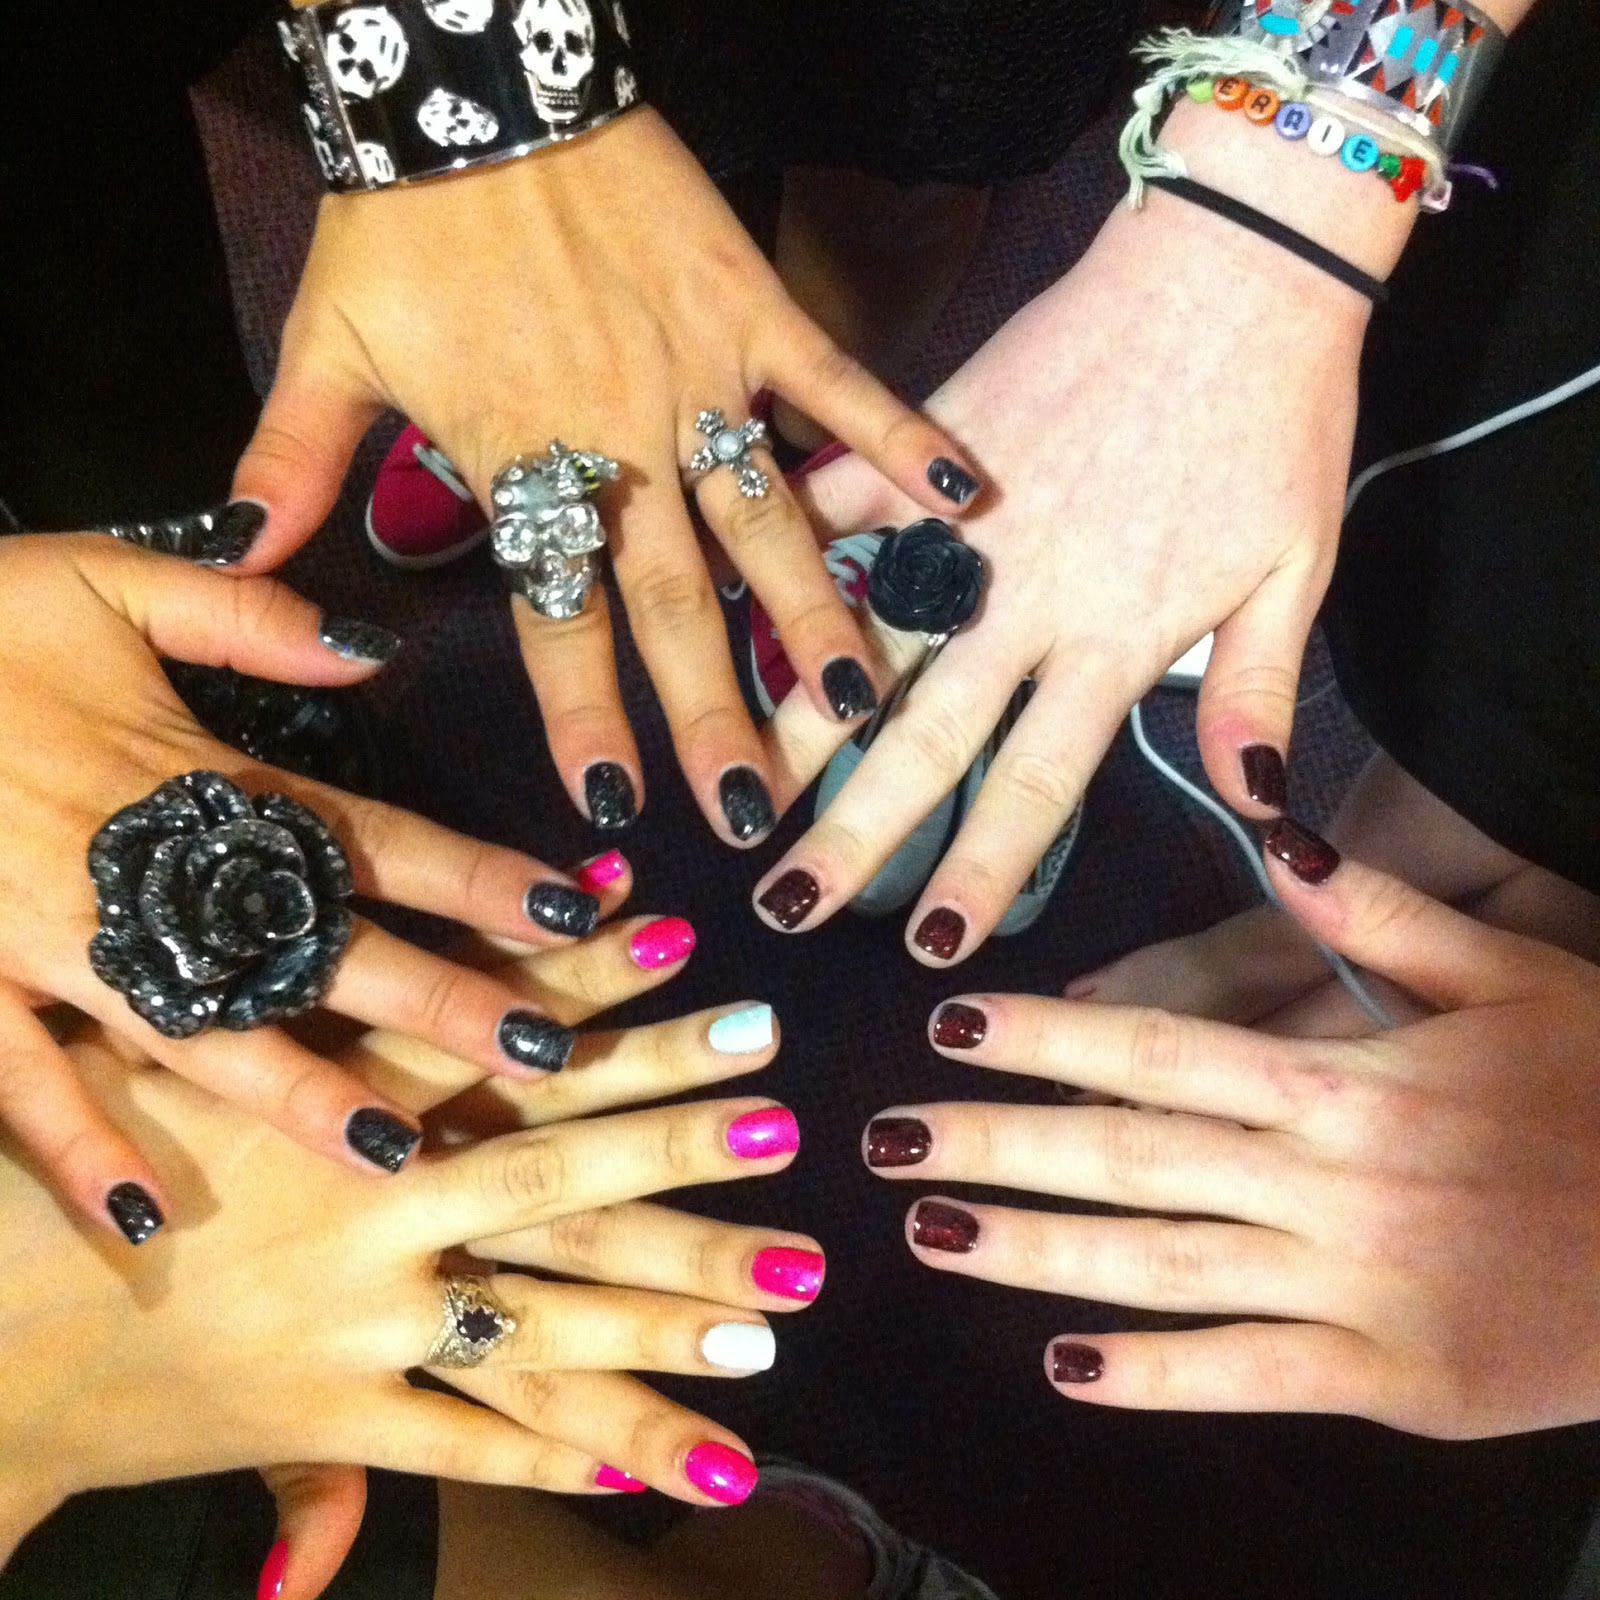 Little Mix Launch Nails with New Look & Elegant Touch   Perfectly ...